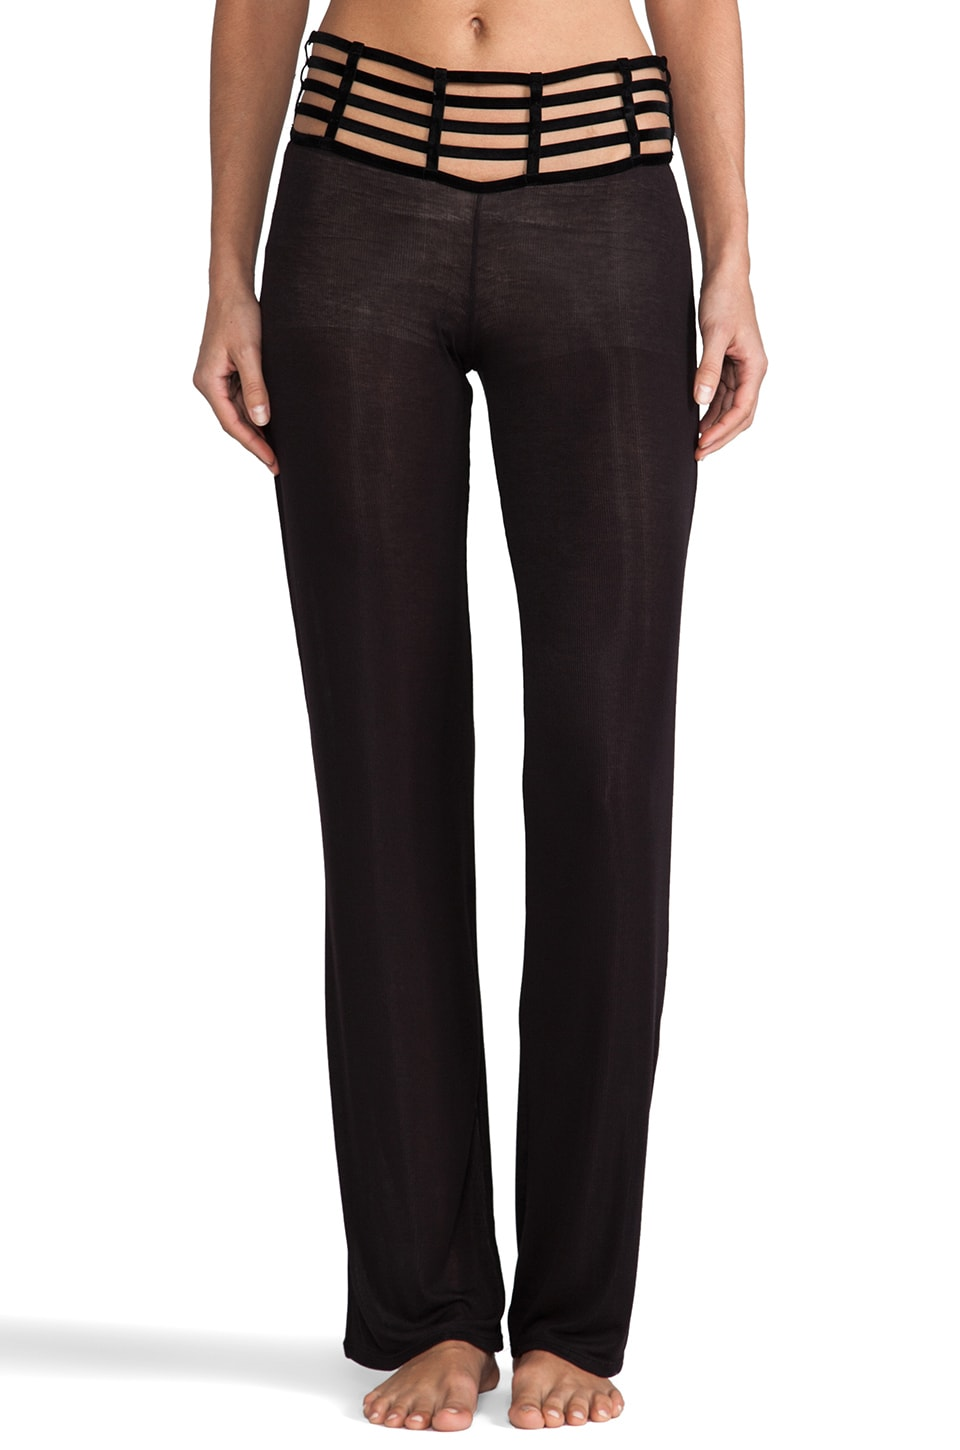 Beach Bunny Barely There Caged Pant in Black